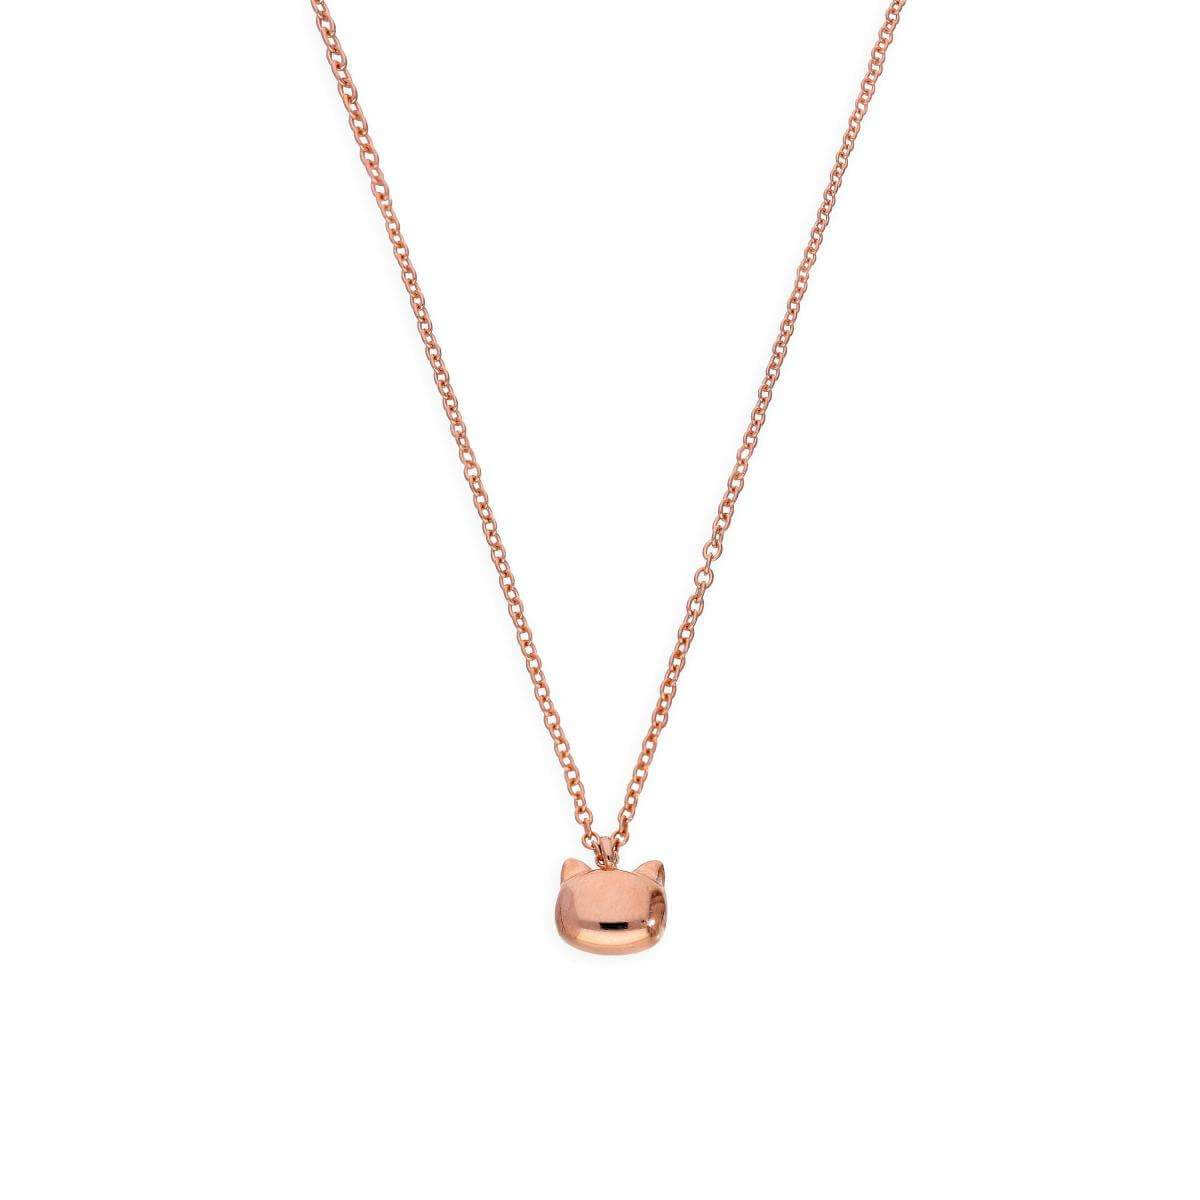 Rose Gold Plated Sterling Silver Cats Head Necklace w 18 Inch Chain